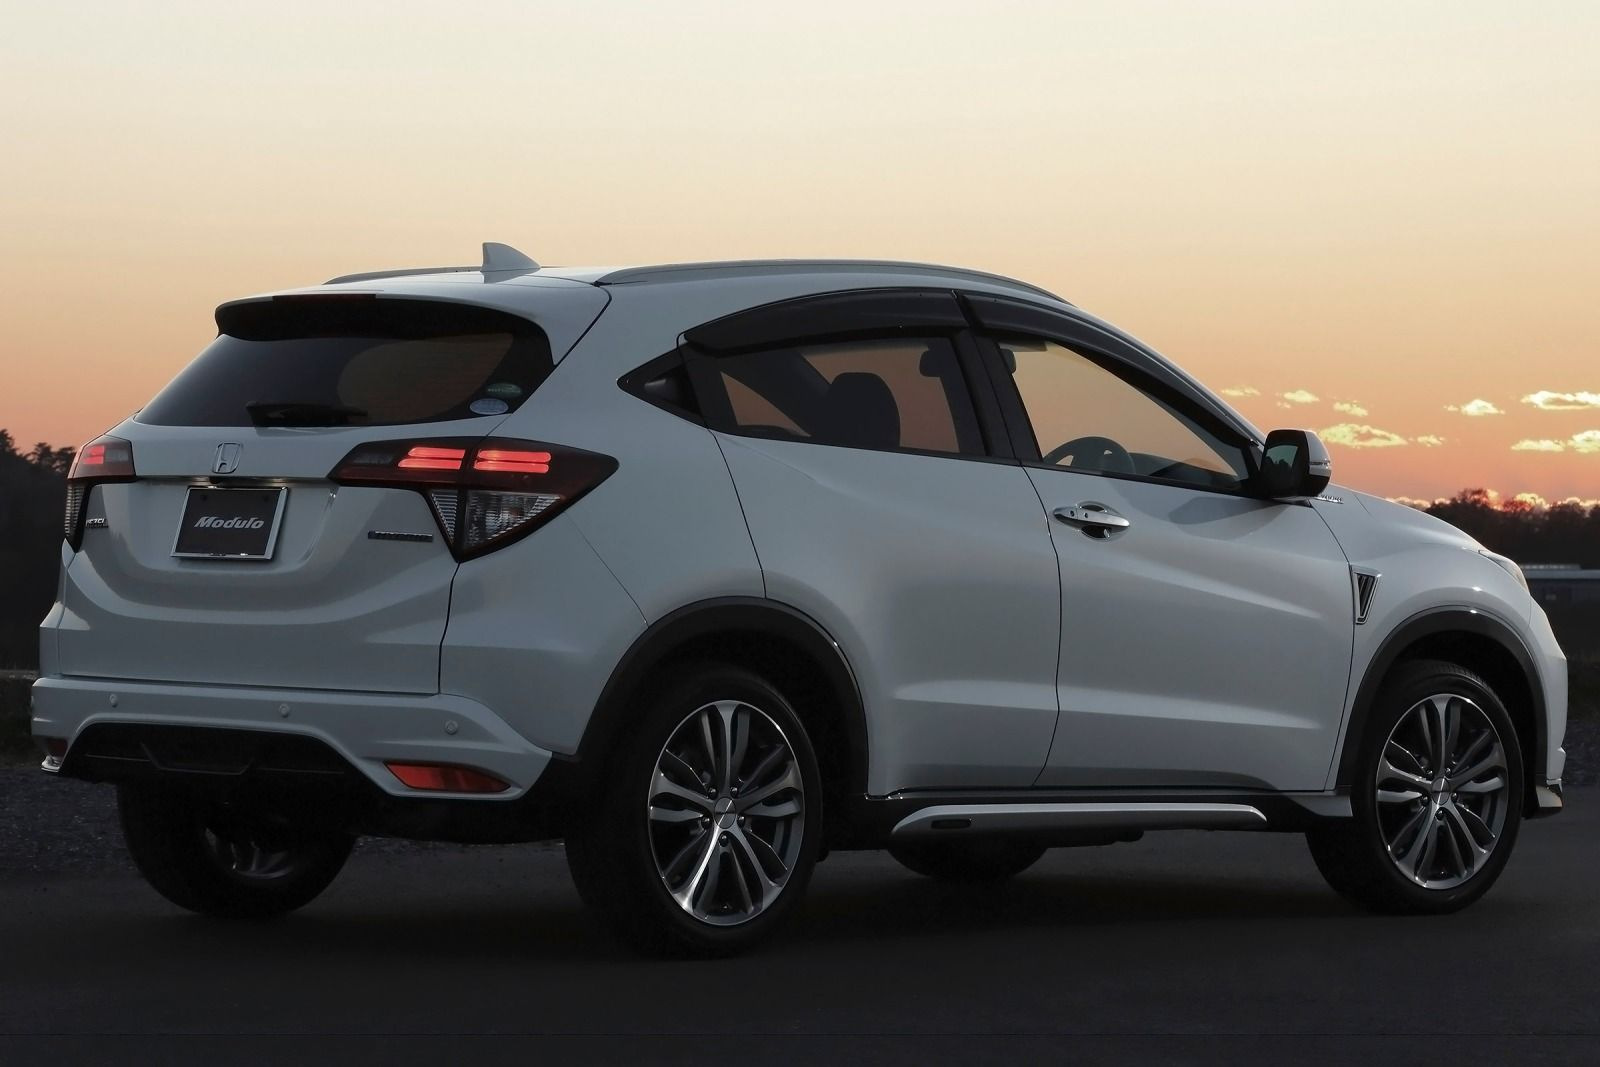 honda hrv - google search | wishlist | pinterest | honda hrv and honda